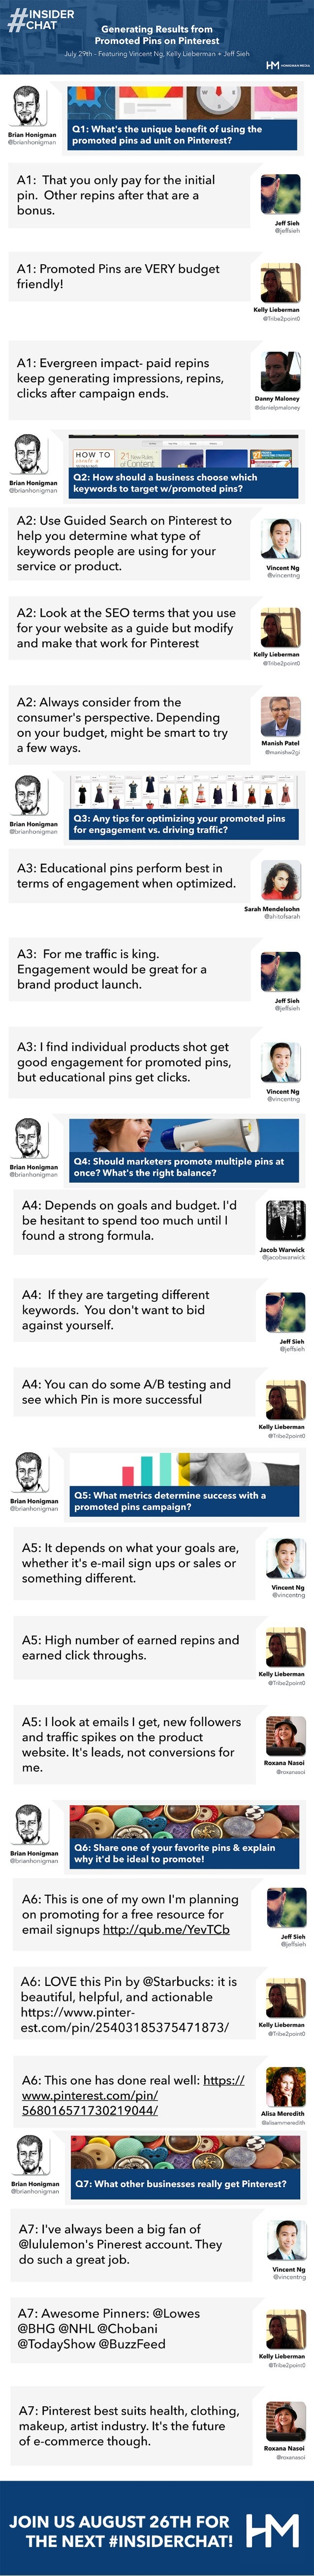 Generating Results from Promoted Pins on Pinterest